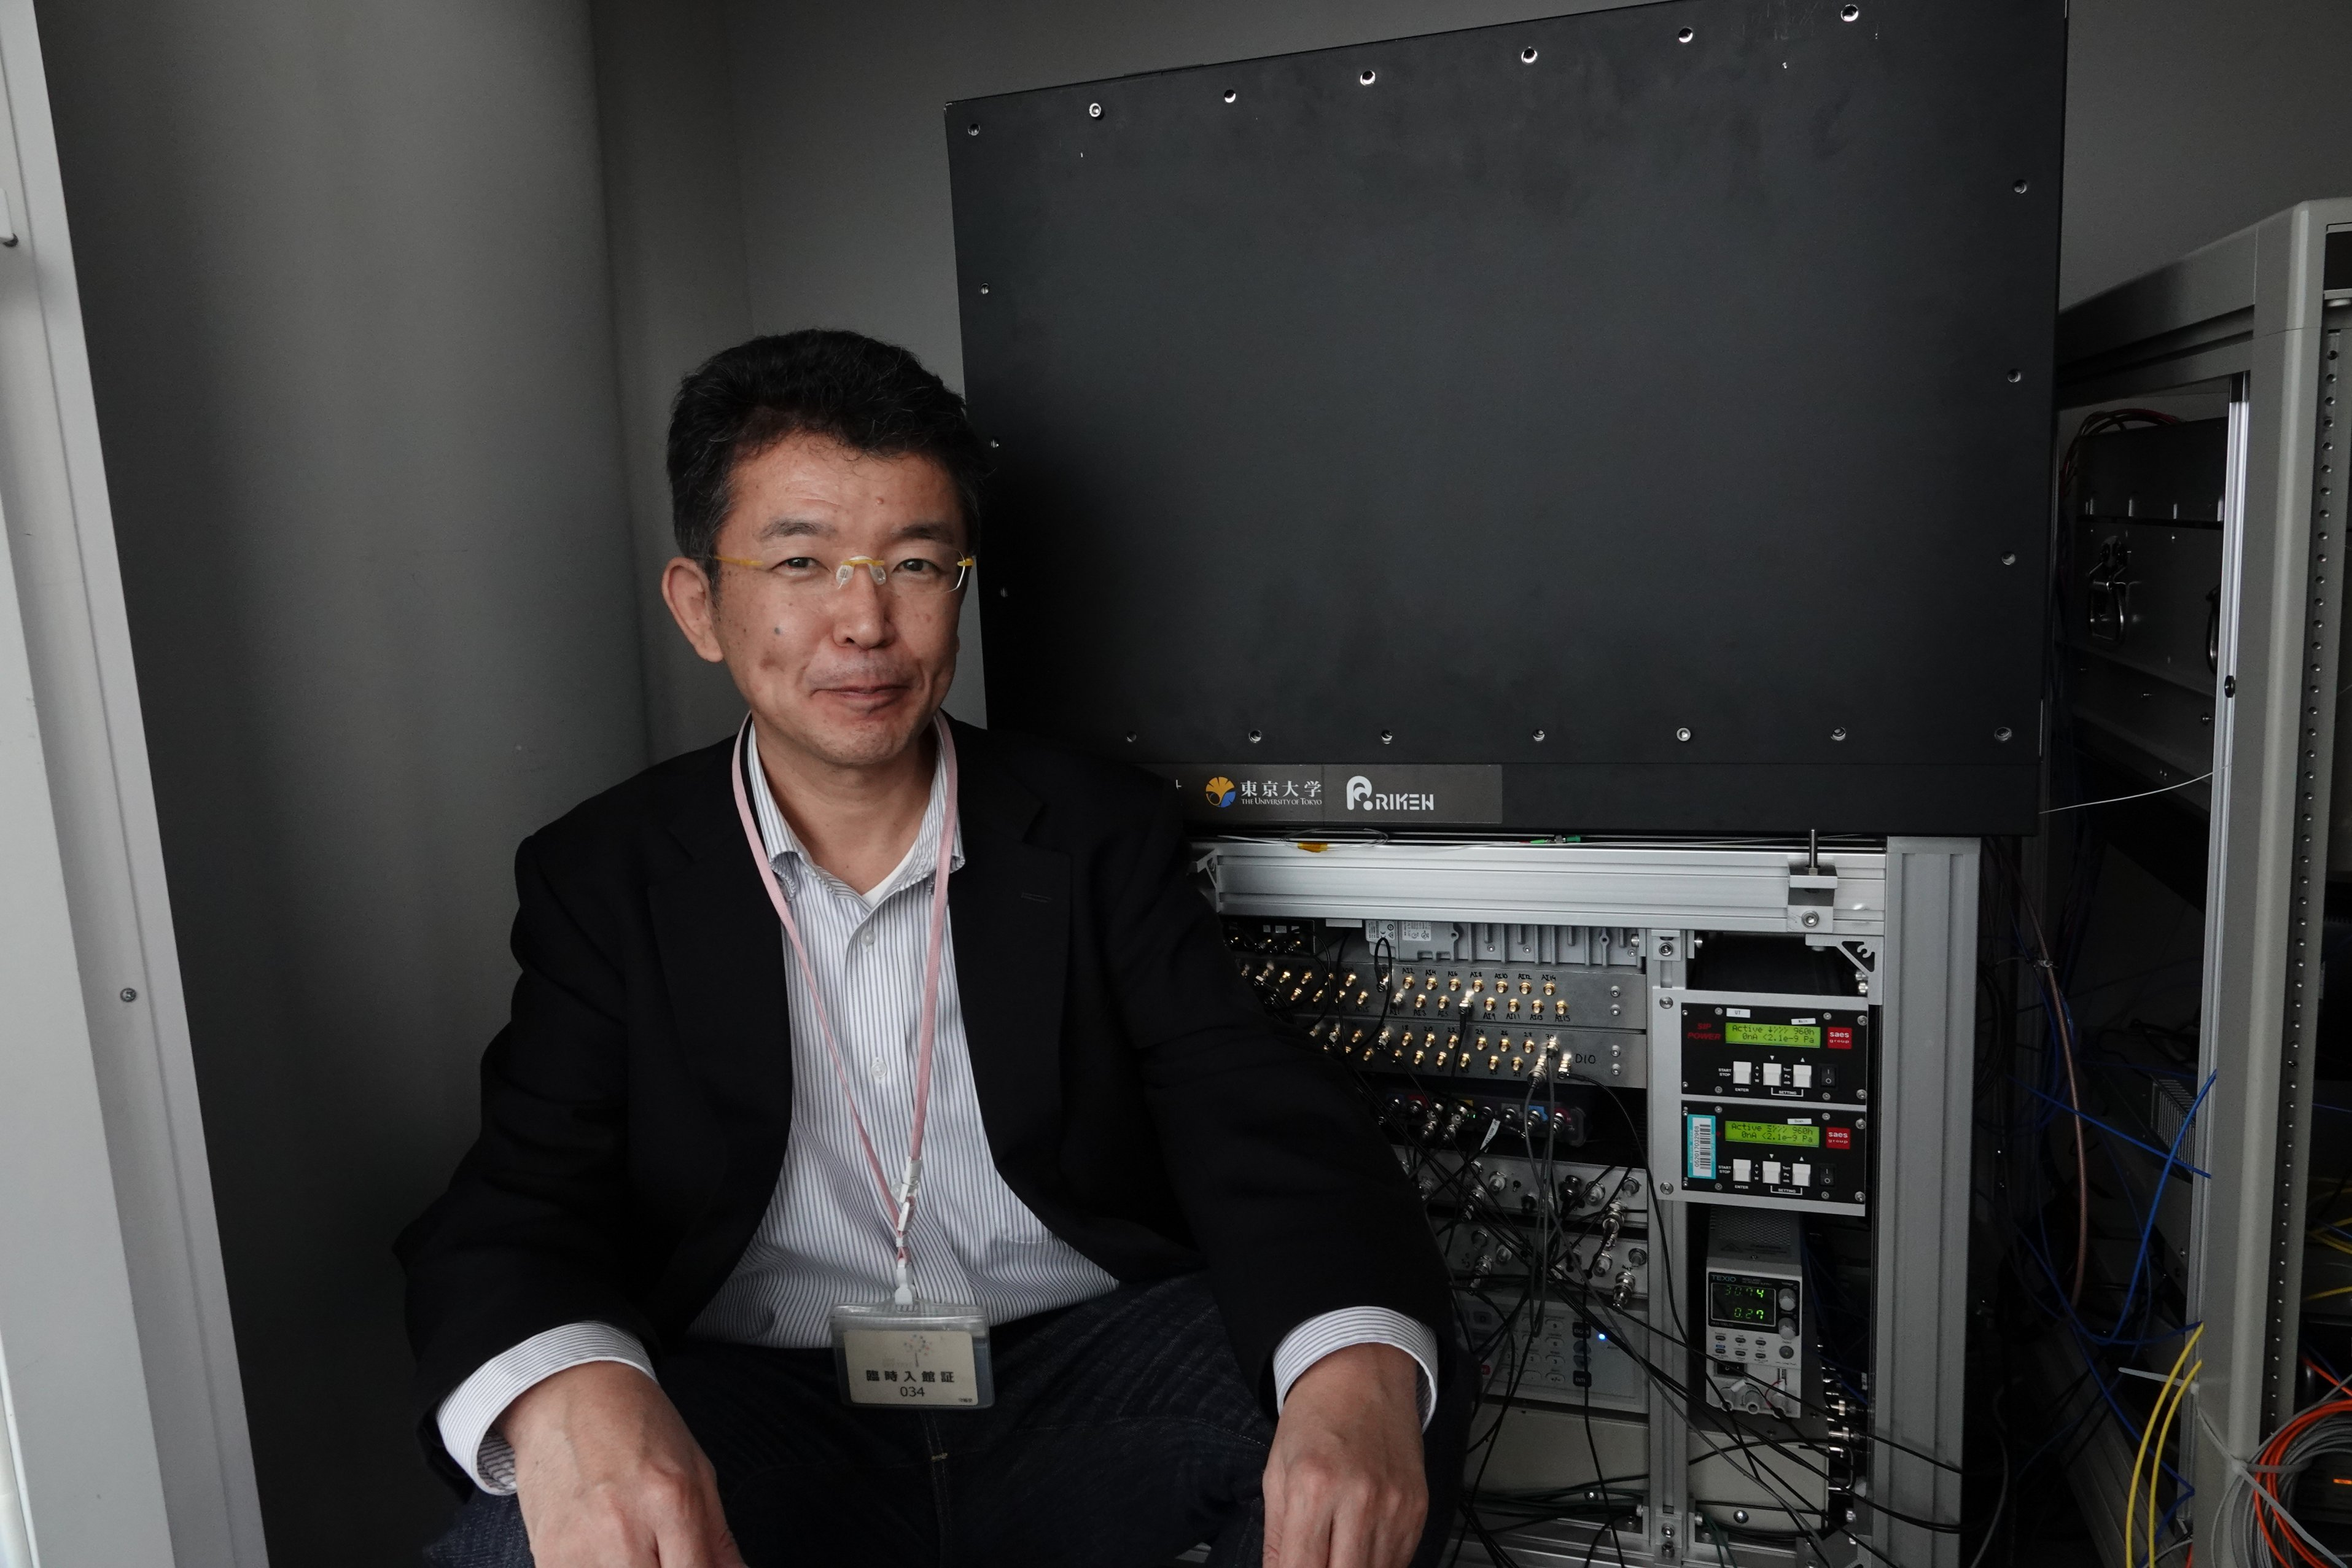 A man sitting next to a grey box with wires coming out of it.